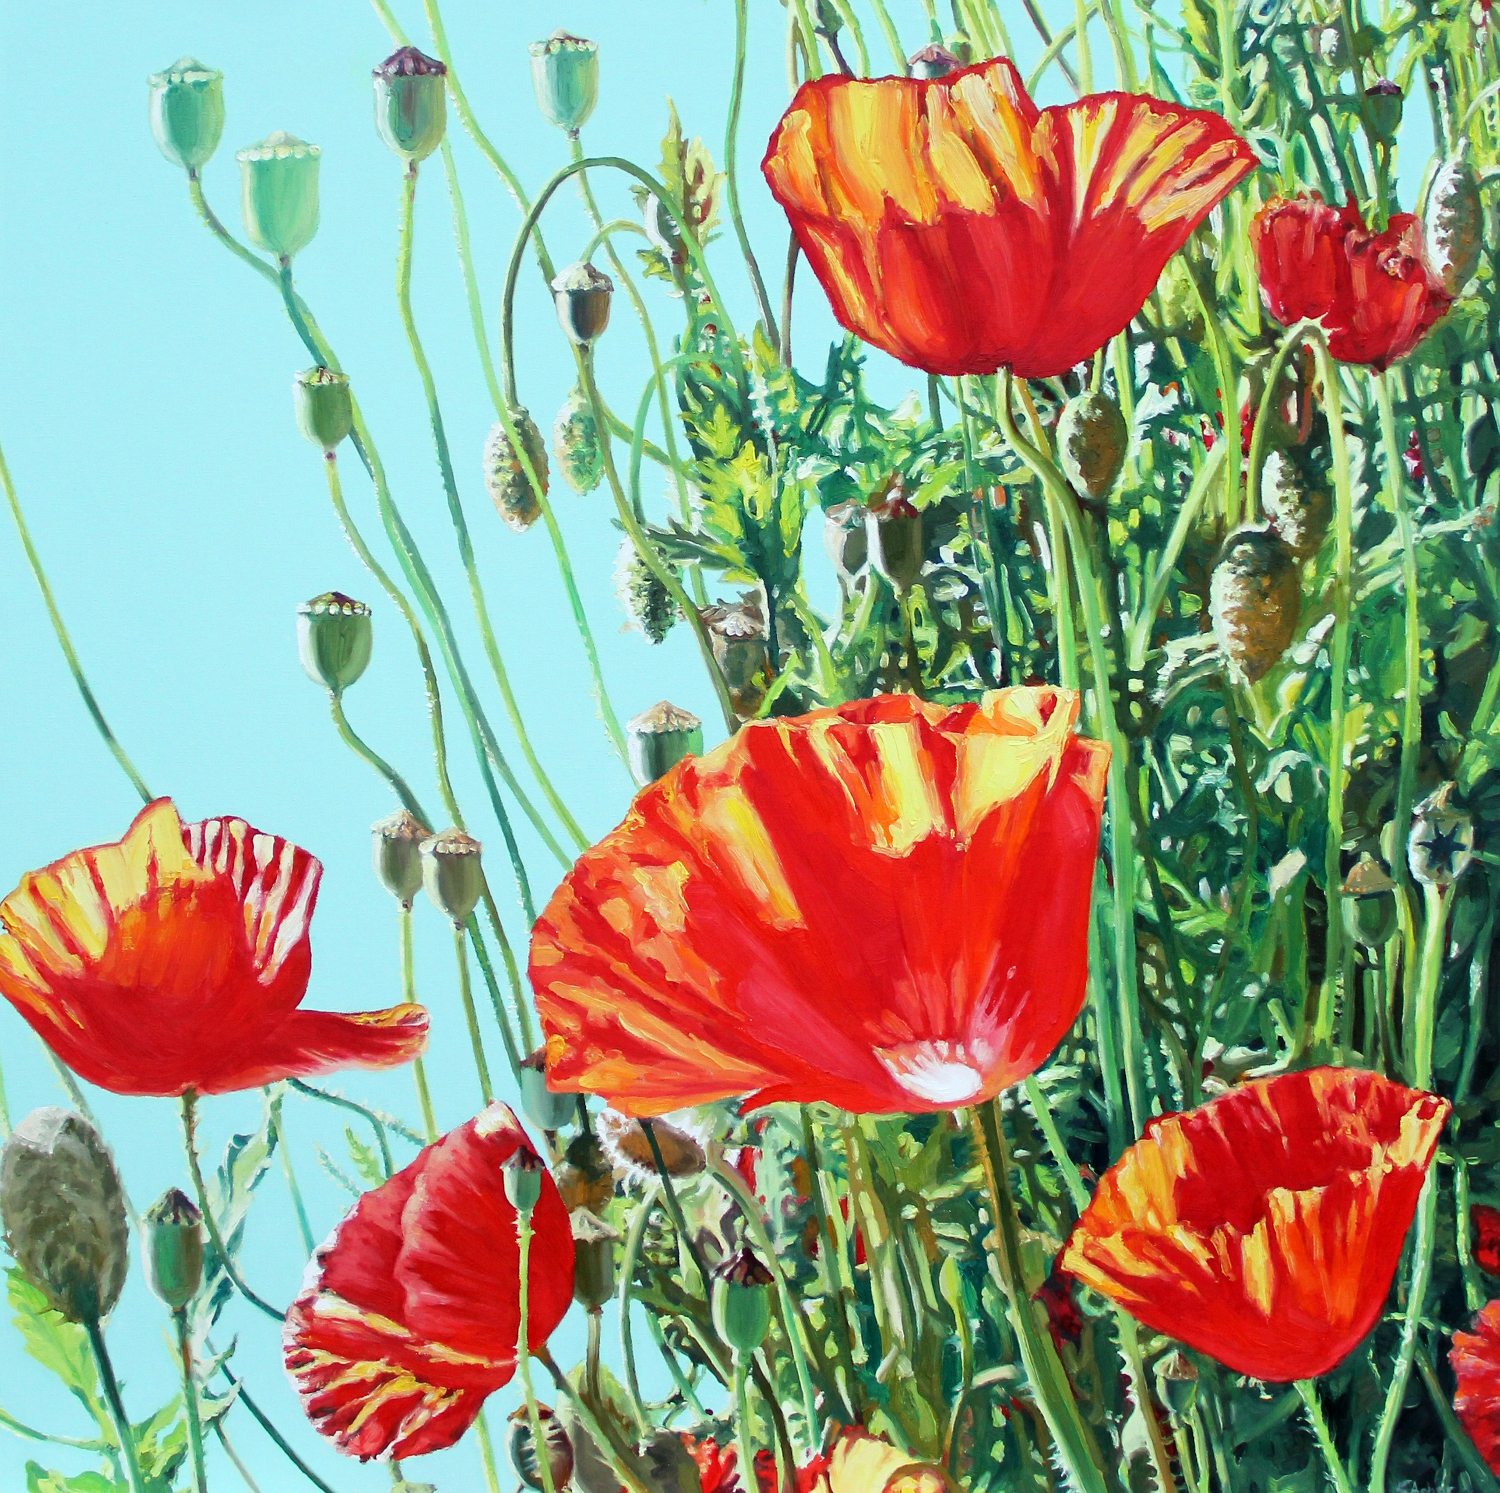 2. A Tangle of Poppies